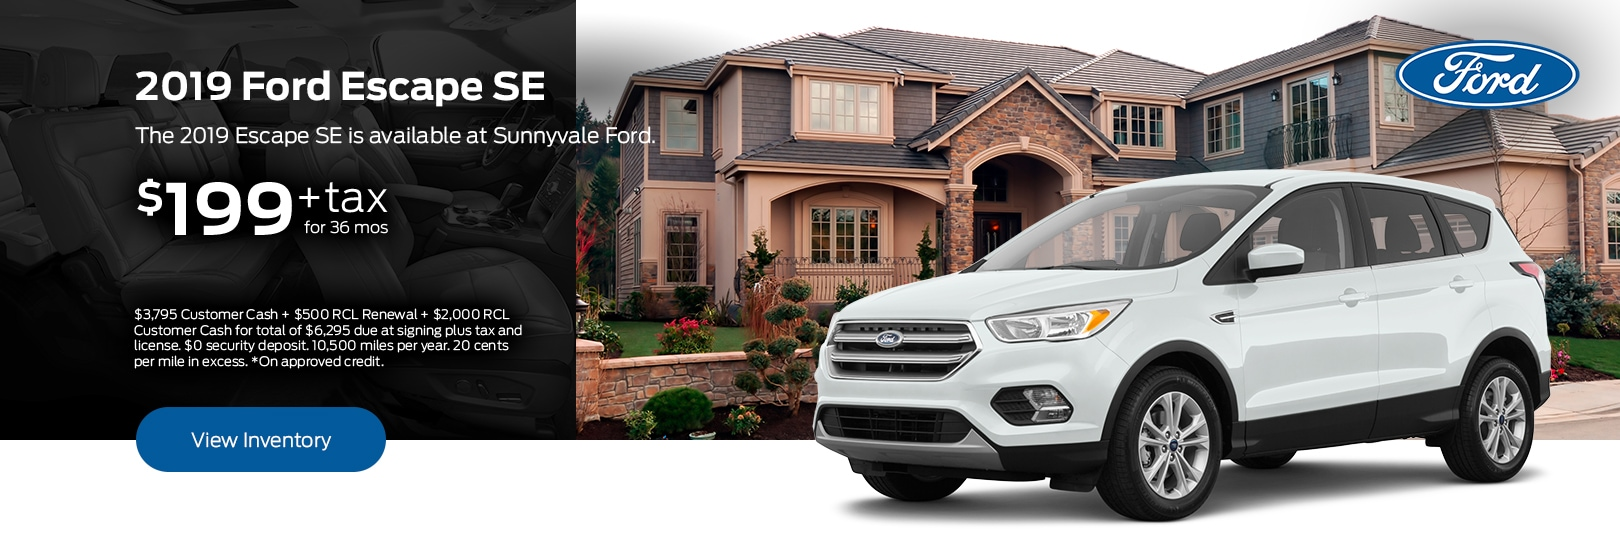 2019 Ford Escape SE.jpg